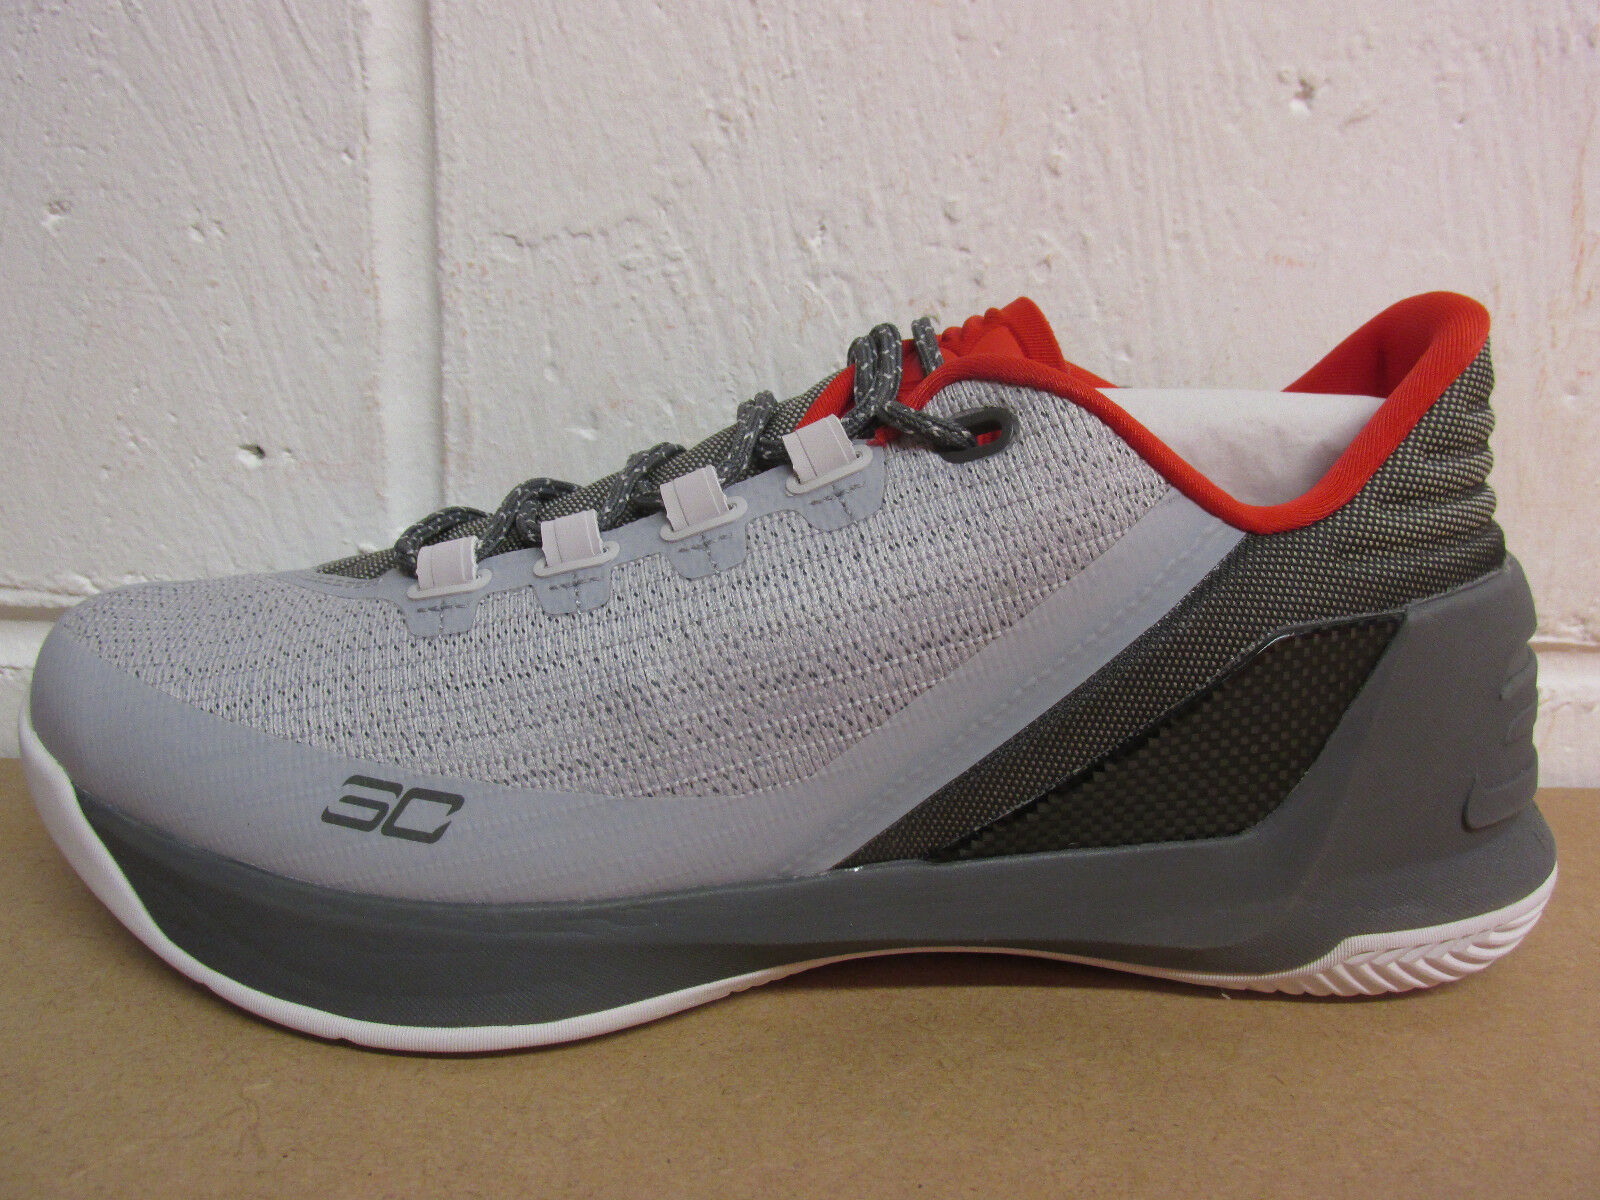 Under Trainers Armour UA Curry 3 Niedrig  Uomo Basketball Trainers Under 1286376 289 Sneakers Schuhes 2fc768